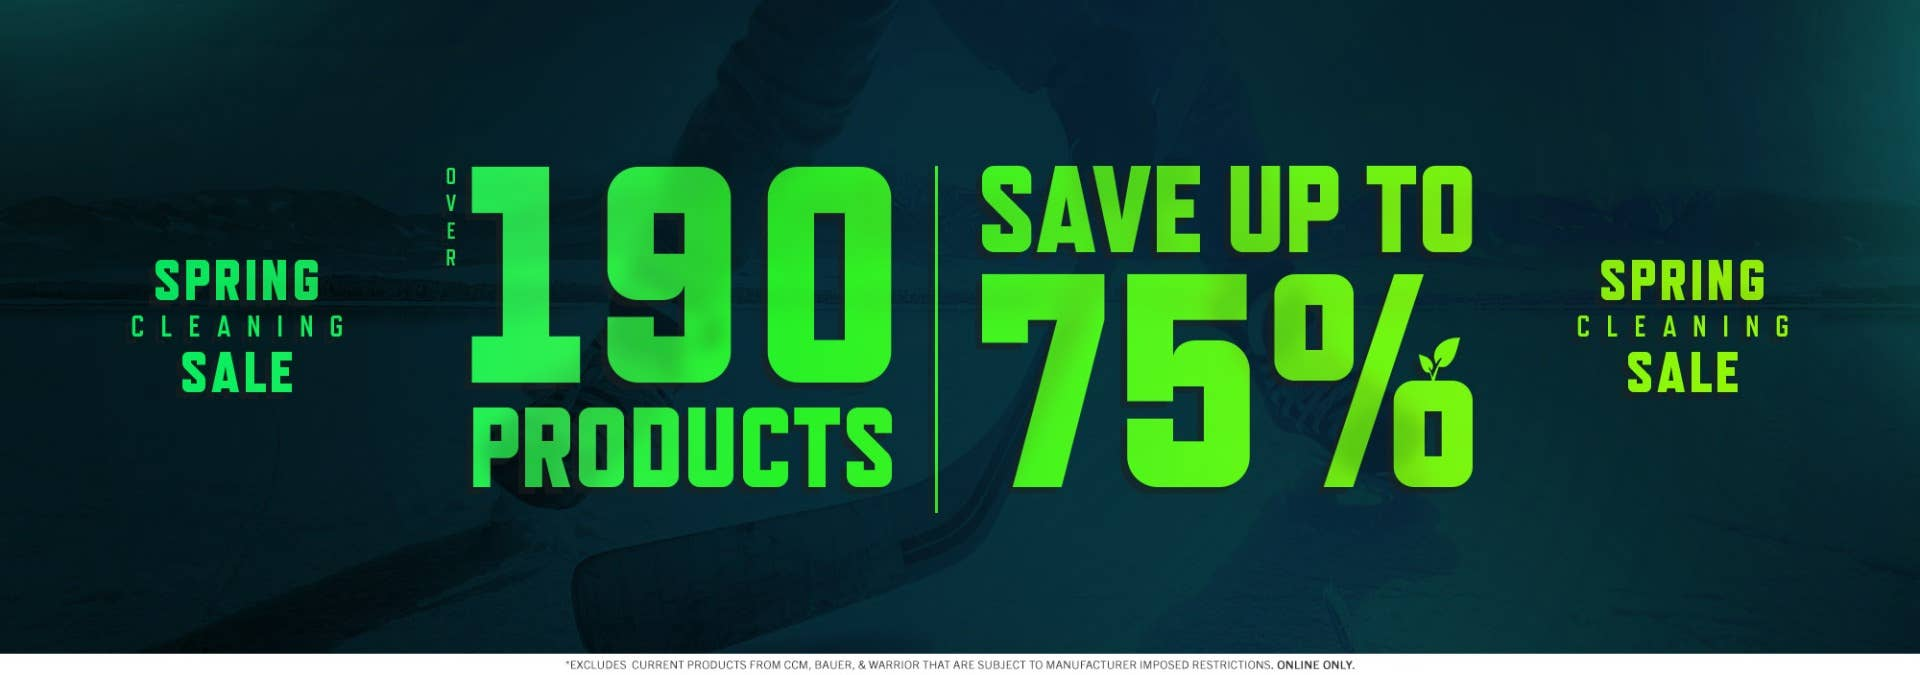 Spring Cleaning Sale: Save up to 75% on over 190 products